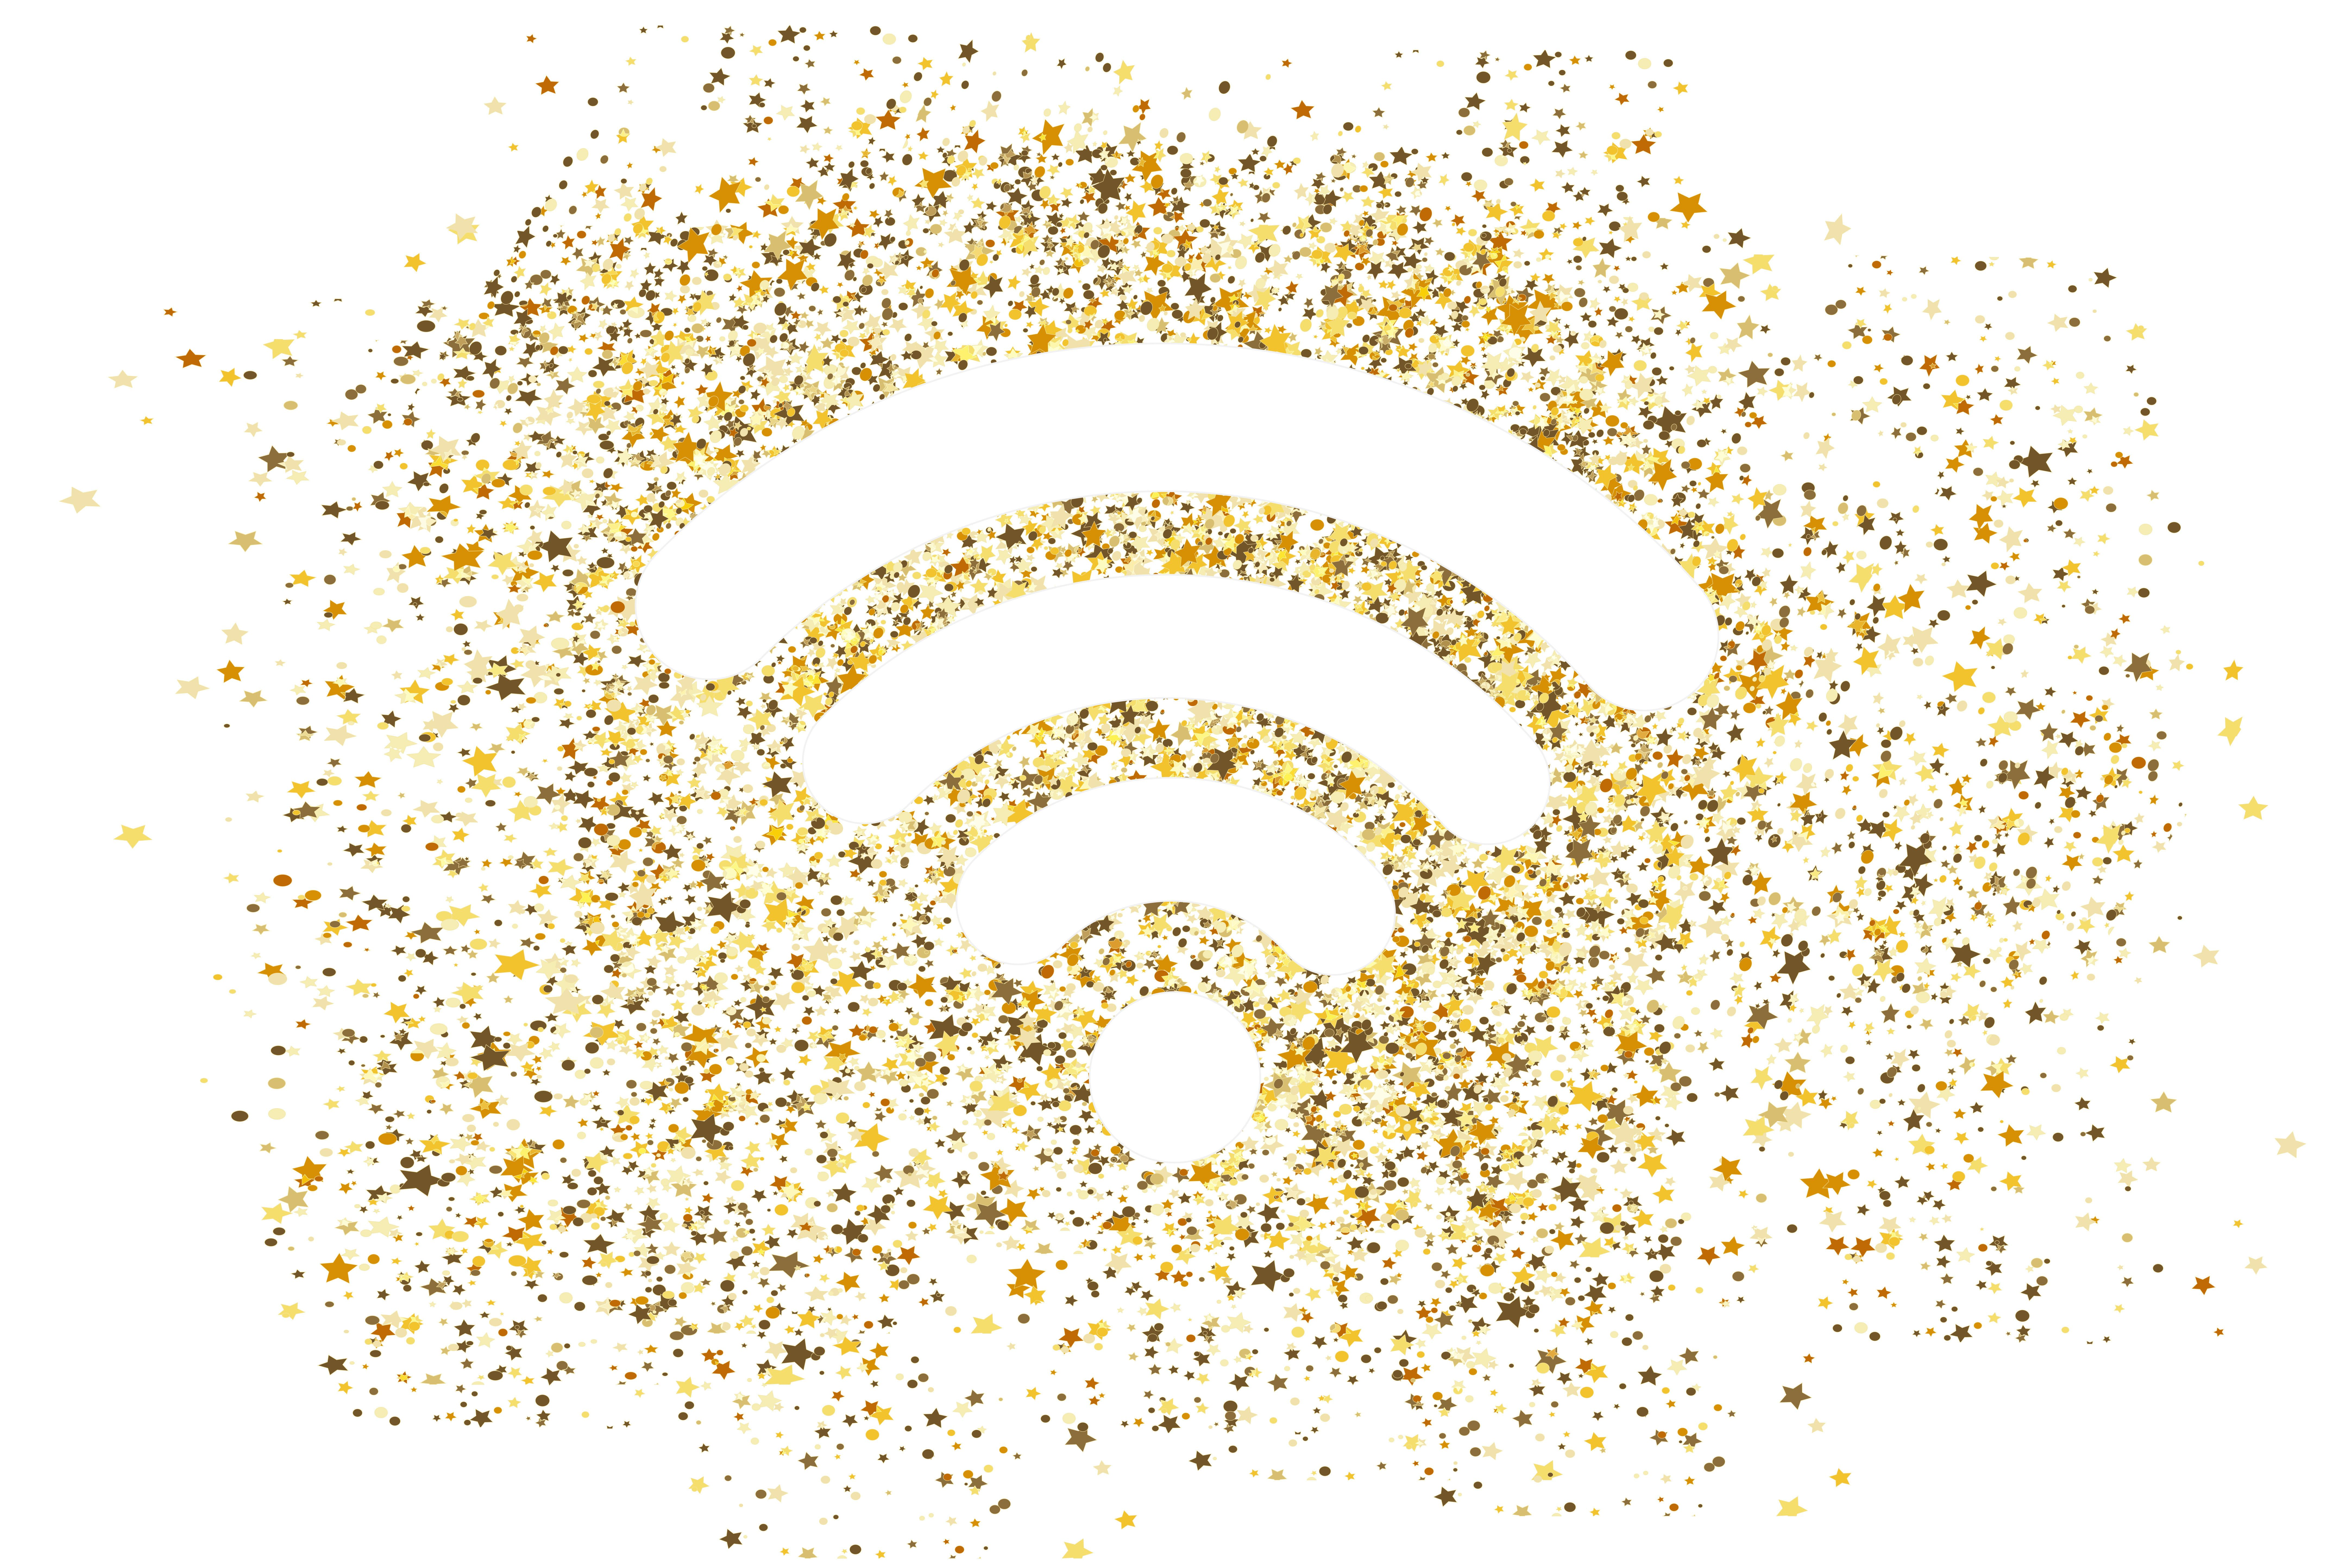 You May Feel Silly When You Find Out What Wi-FI Actually Stands